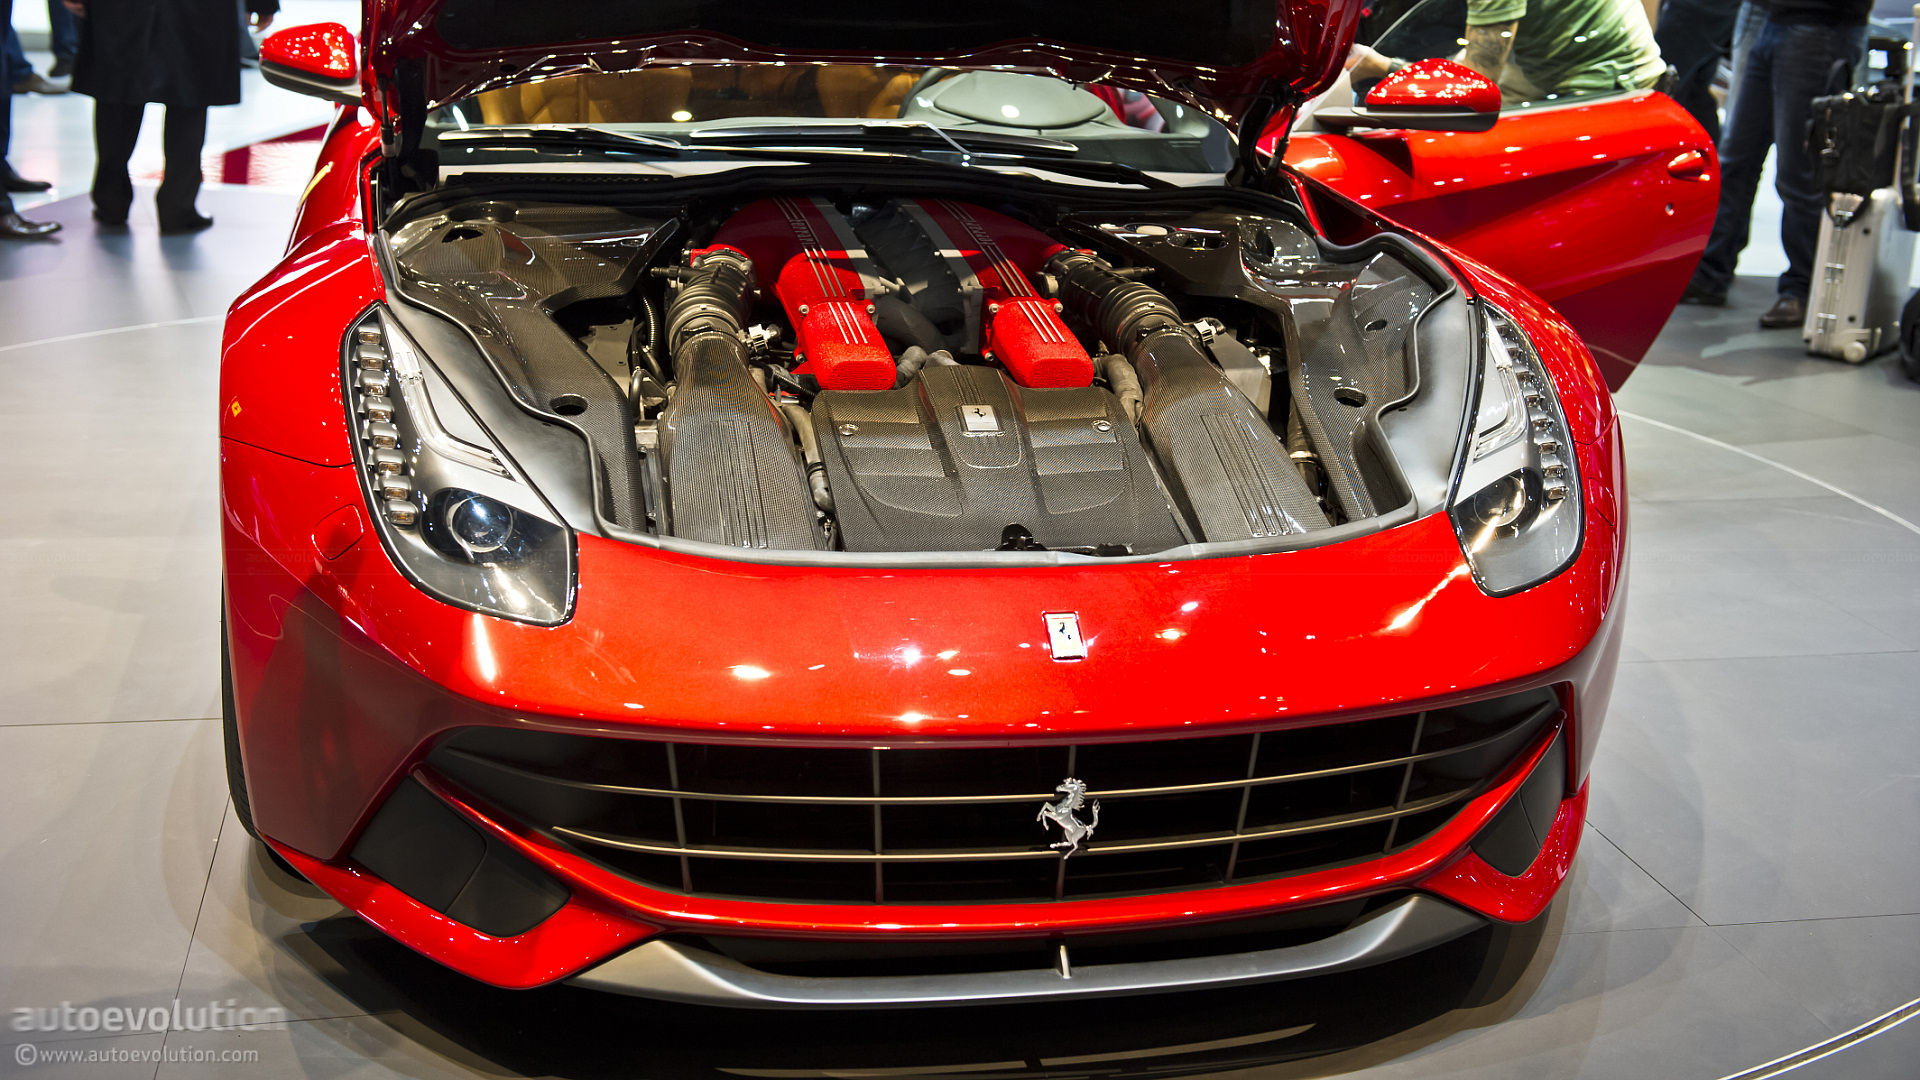 geneva 2012 ferrari f12 berlinetta live photos autoevolution. Black Bedroom Furniture Sets. Home Design Ideas